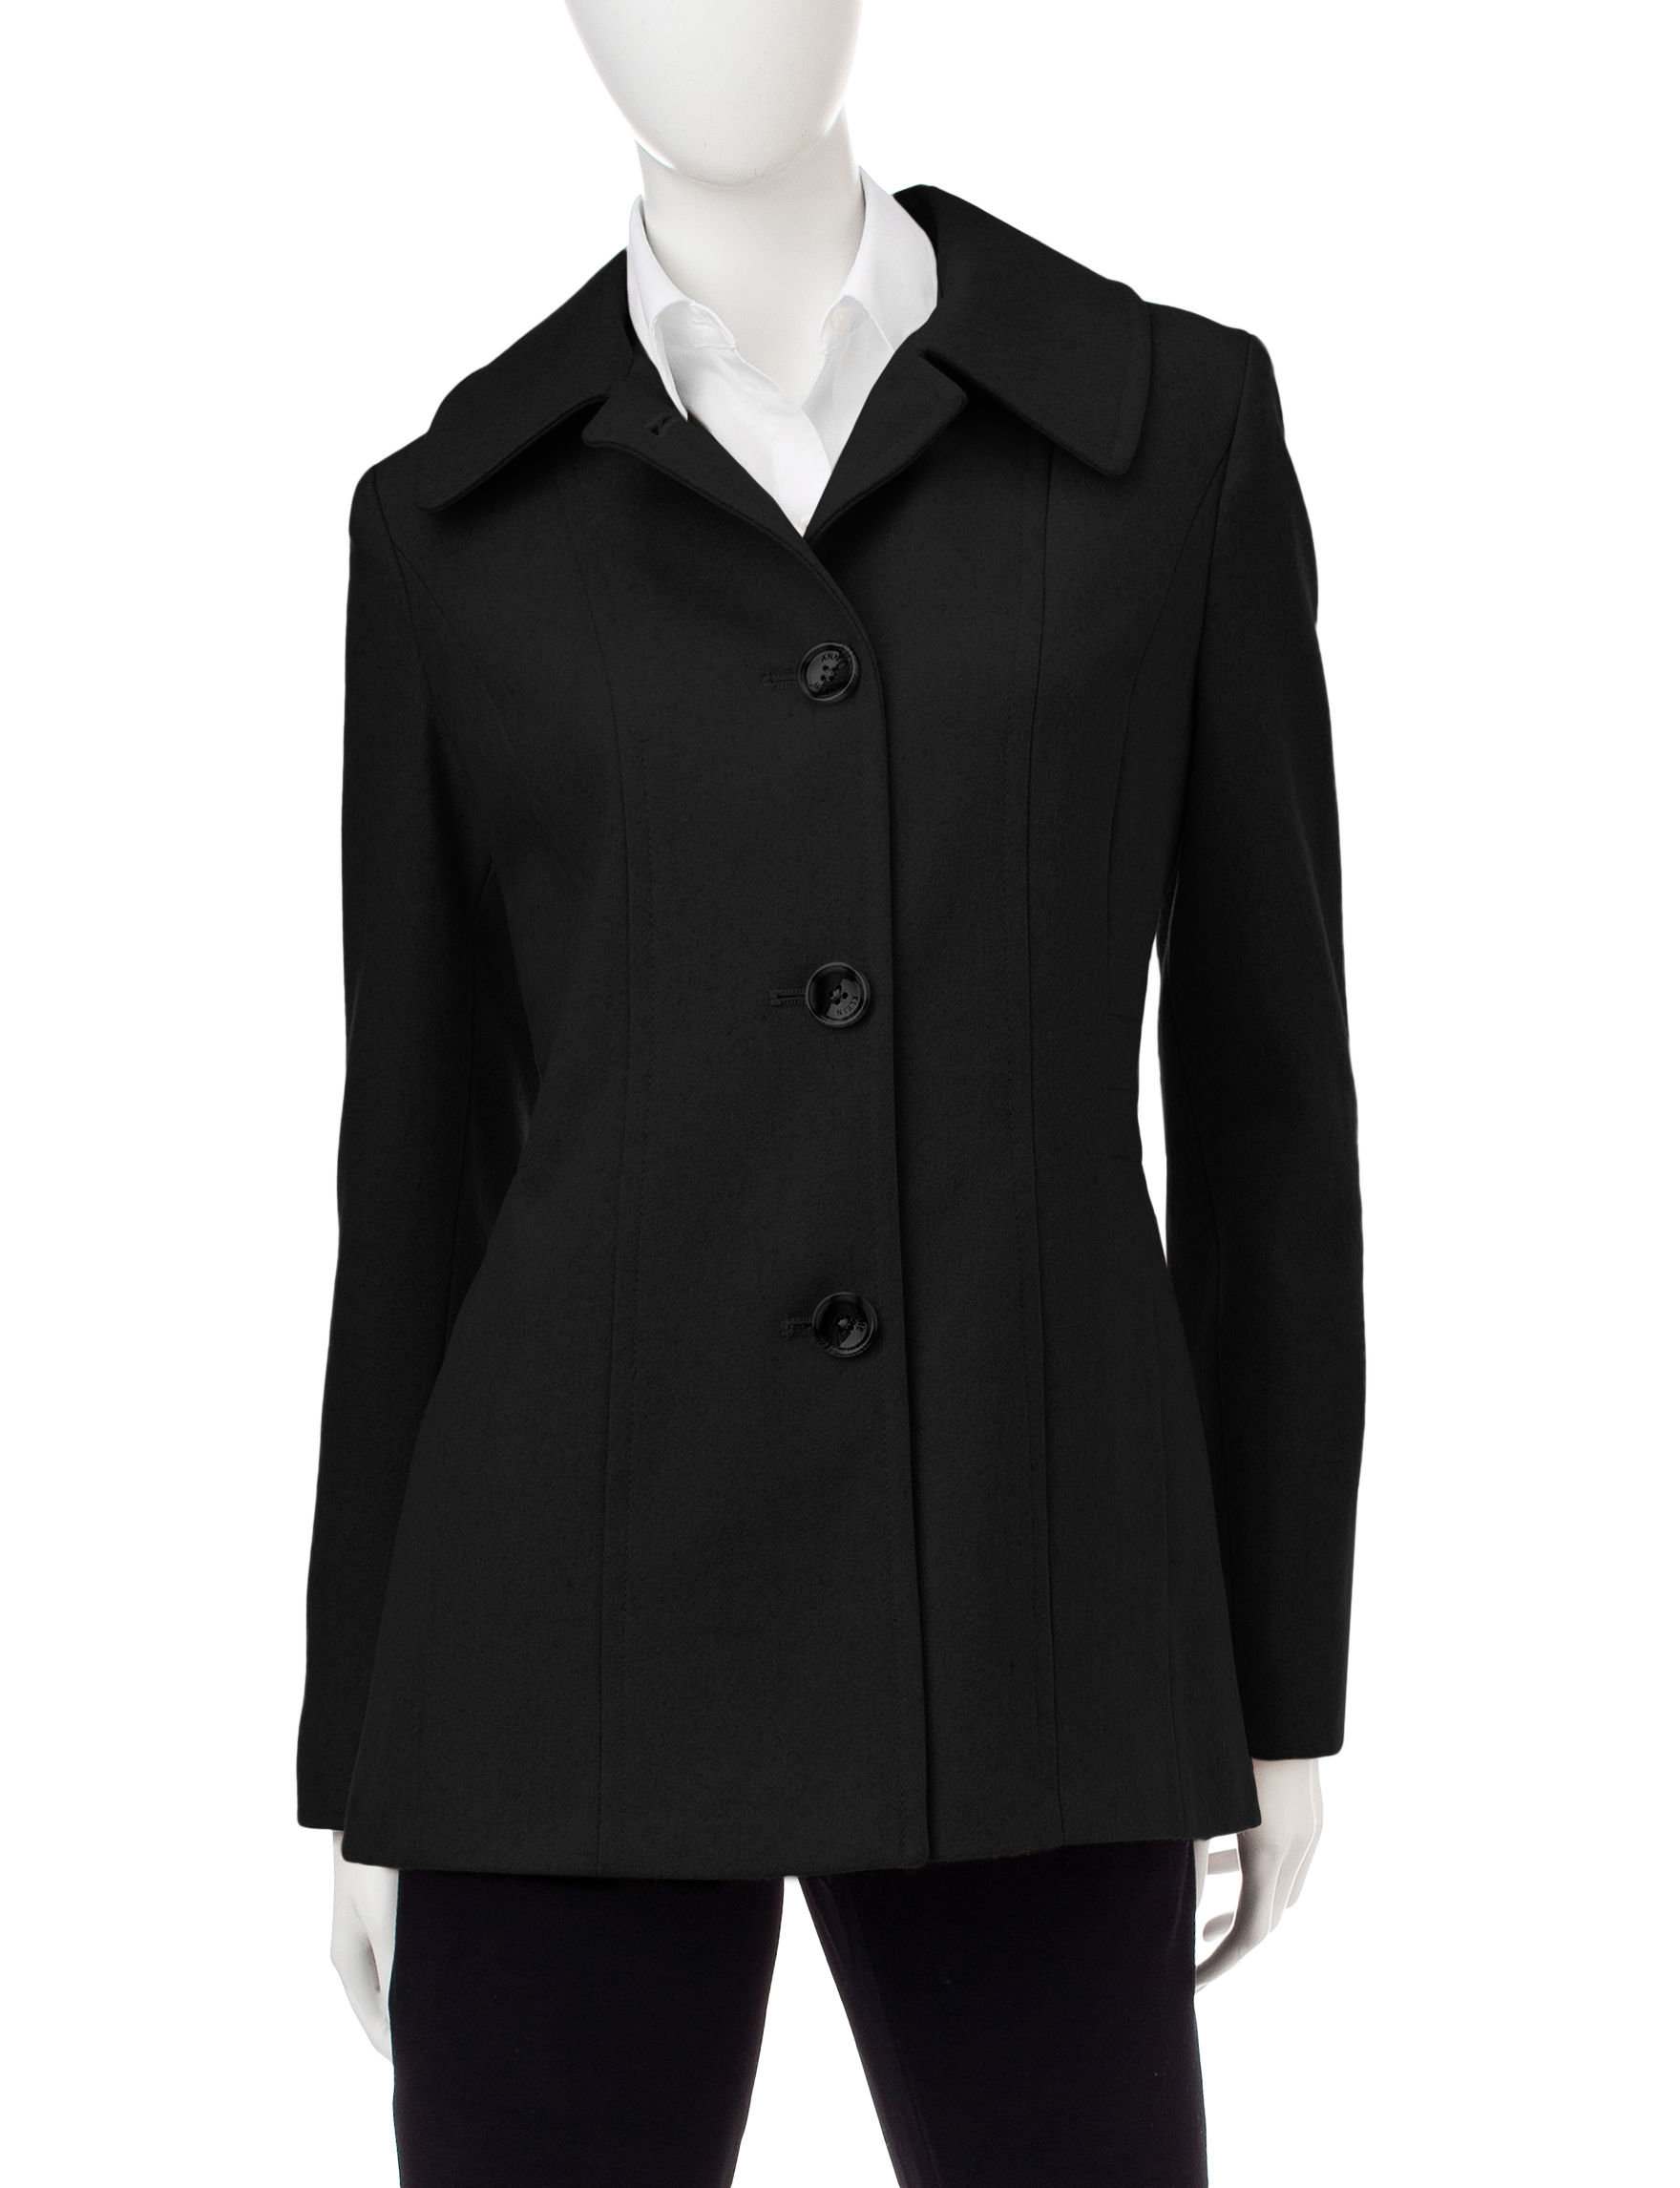 Anne Klein Black Peacoats & Overcoats